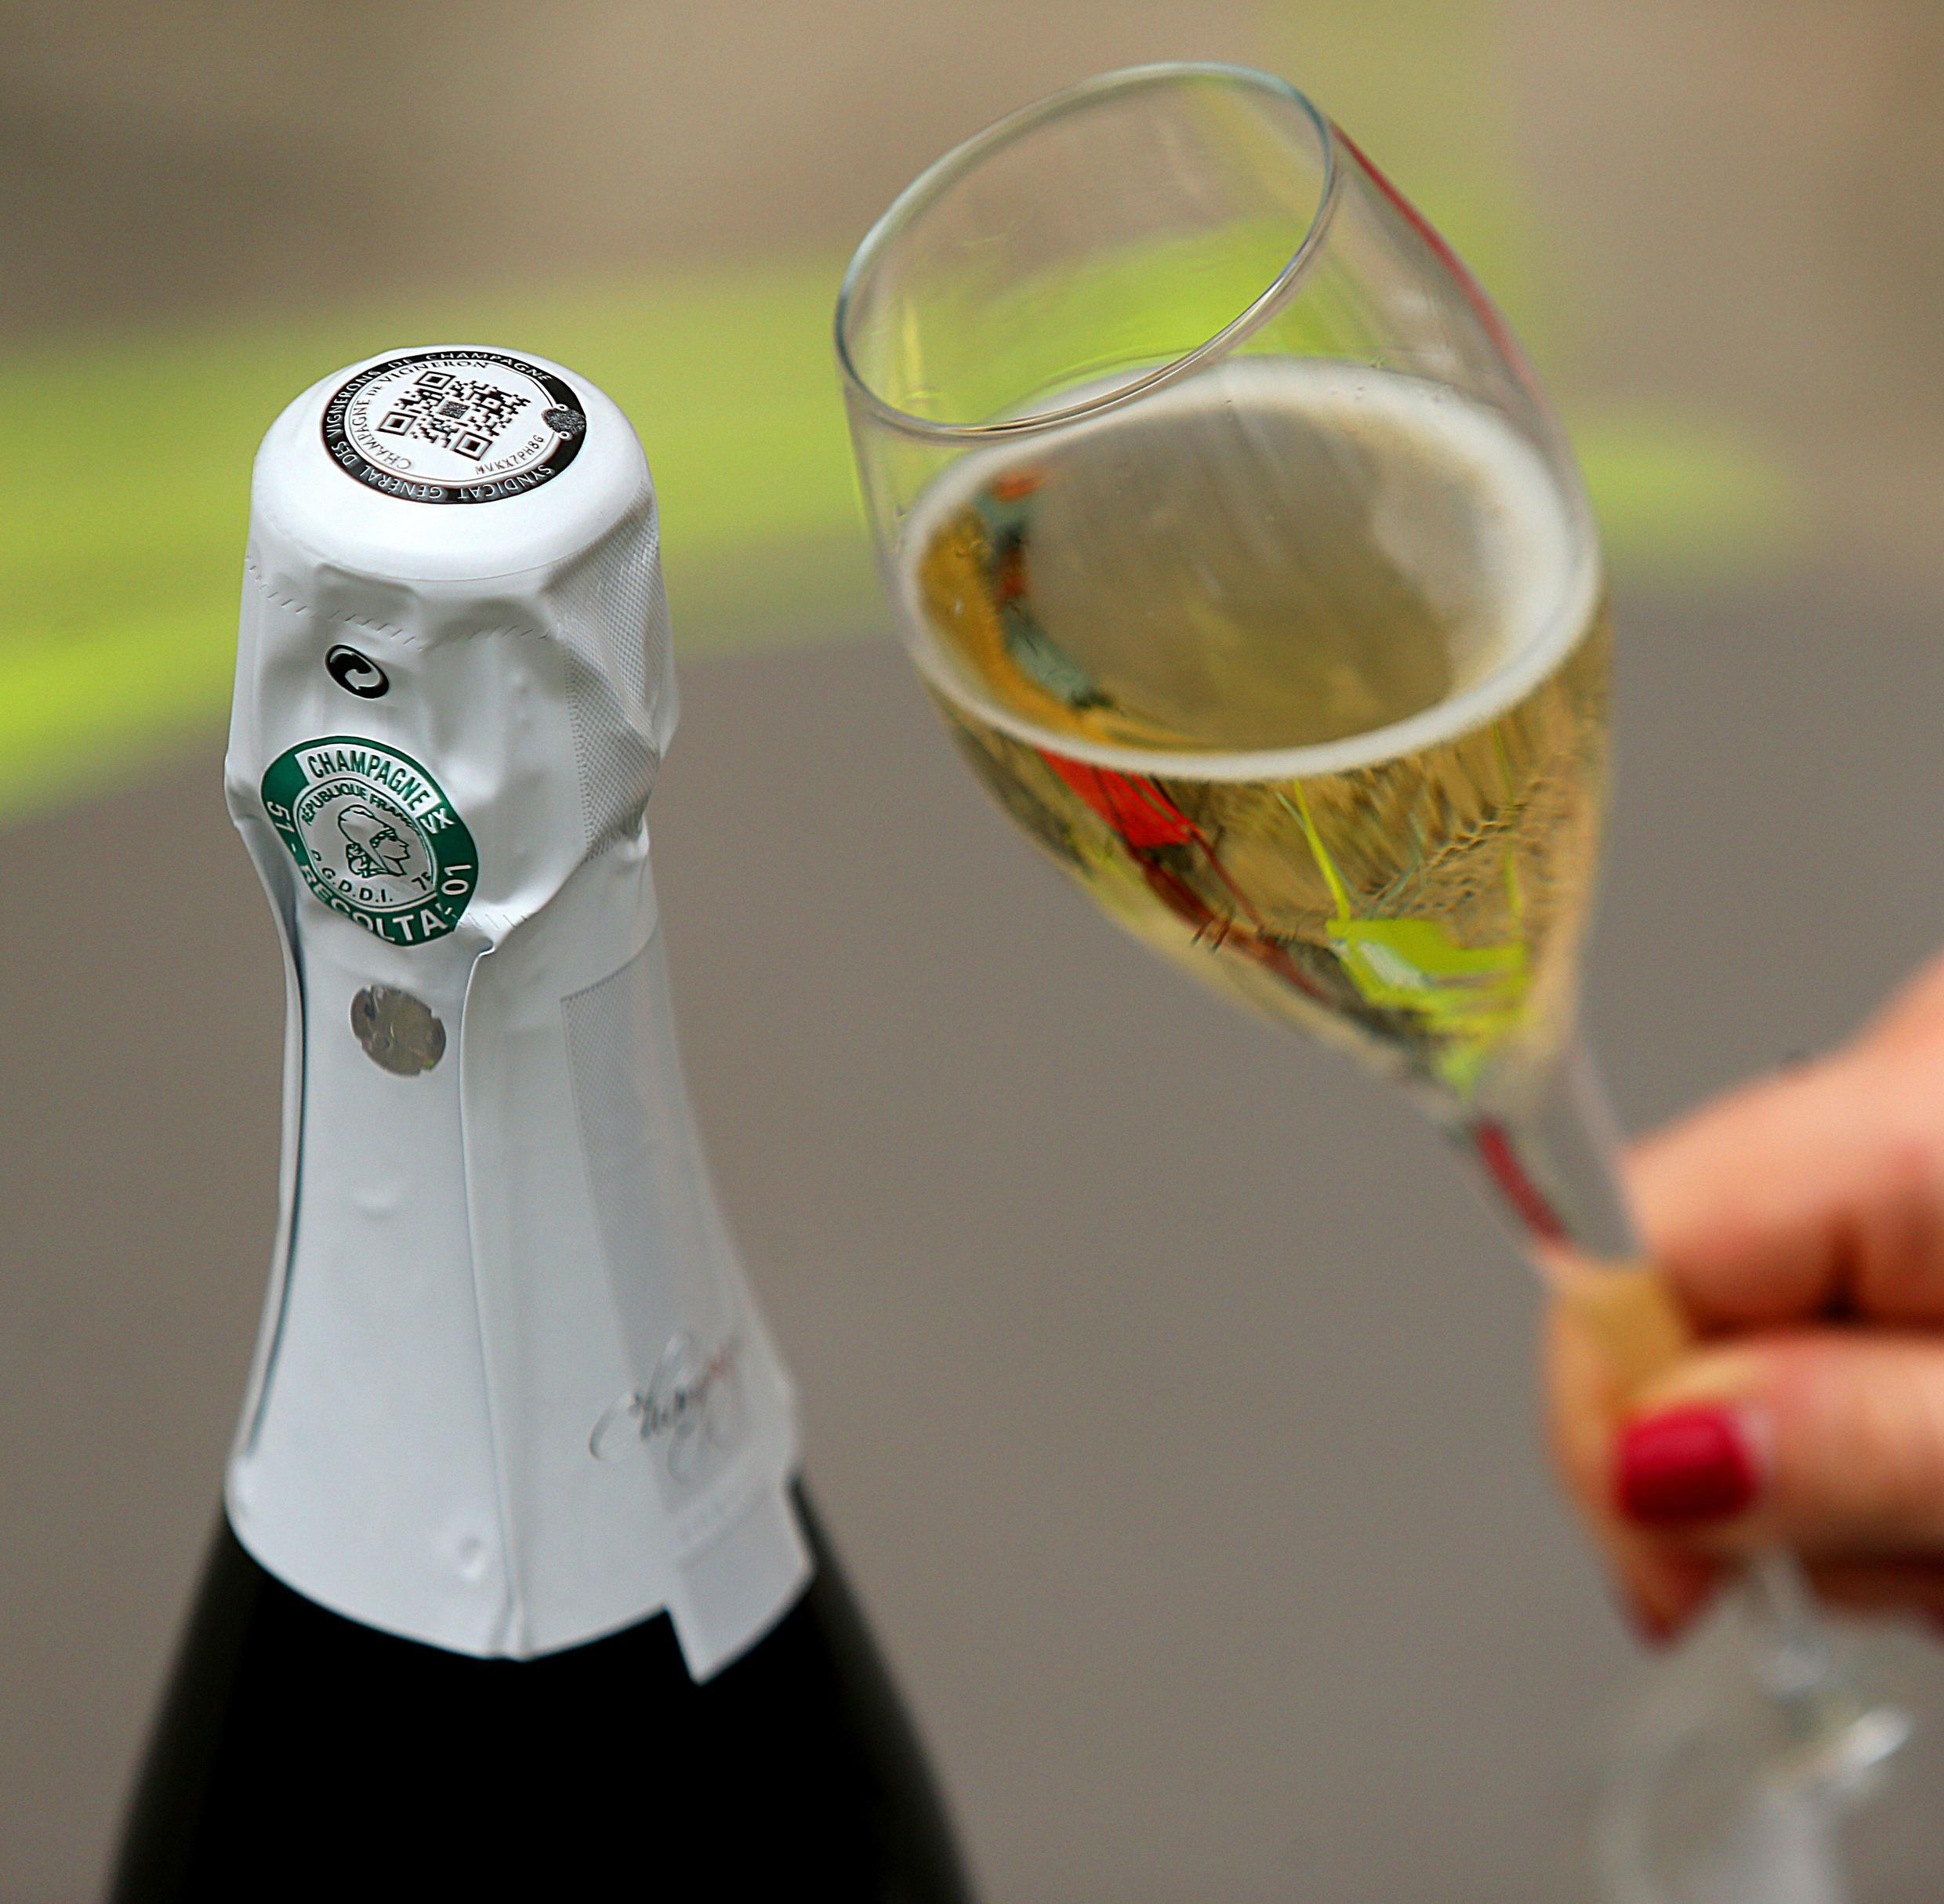 (FILES) A file photo taken on May 6, 2019 shows a glass of champagne next to a bottle which label contains a QR code to guarantee its traceability in Epernay, eastern France, at the General Syndicate of Winegrowers of Champagne (SGV).Champagne sales fell of 18% in 2020 as a consequence of the Covid-19 epidemic. According to the Champagne Committee, which brings together producers and traders, 245 million bottles were sold worldwide during the year due to the closure of hotels, bars and restaurants and the decline in tourism in France in particular, indicated the organisation on January 26, 2021.